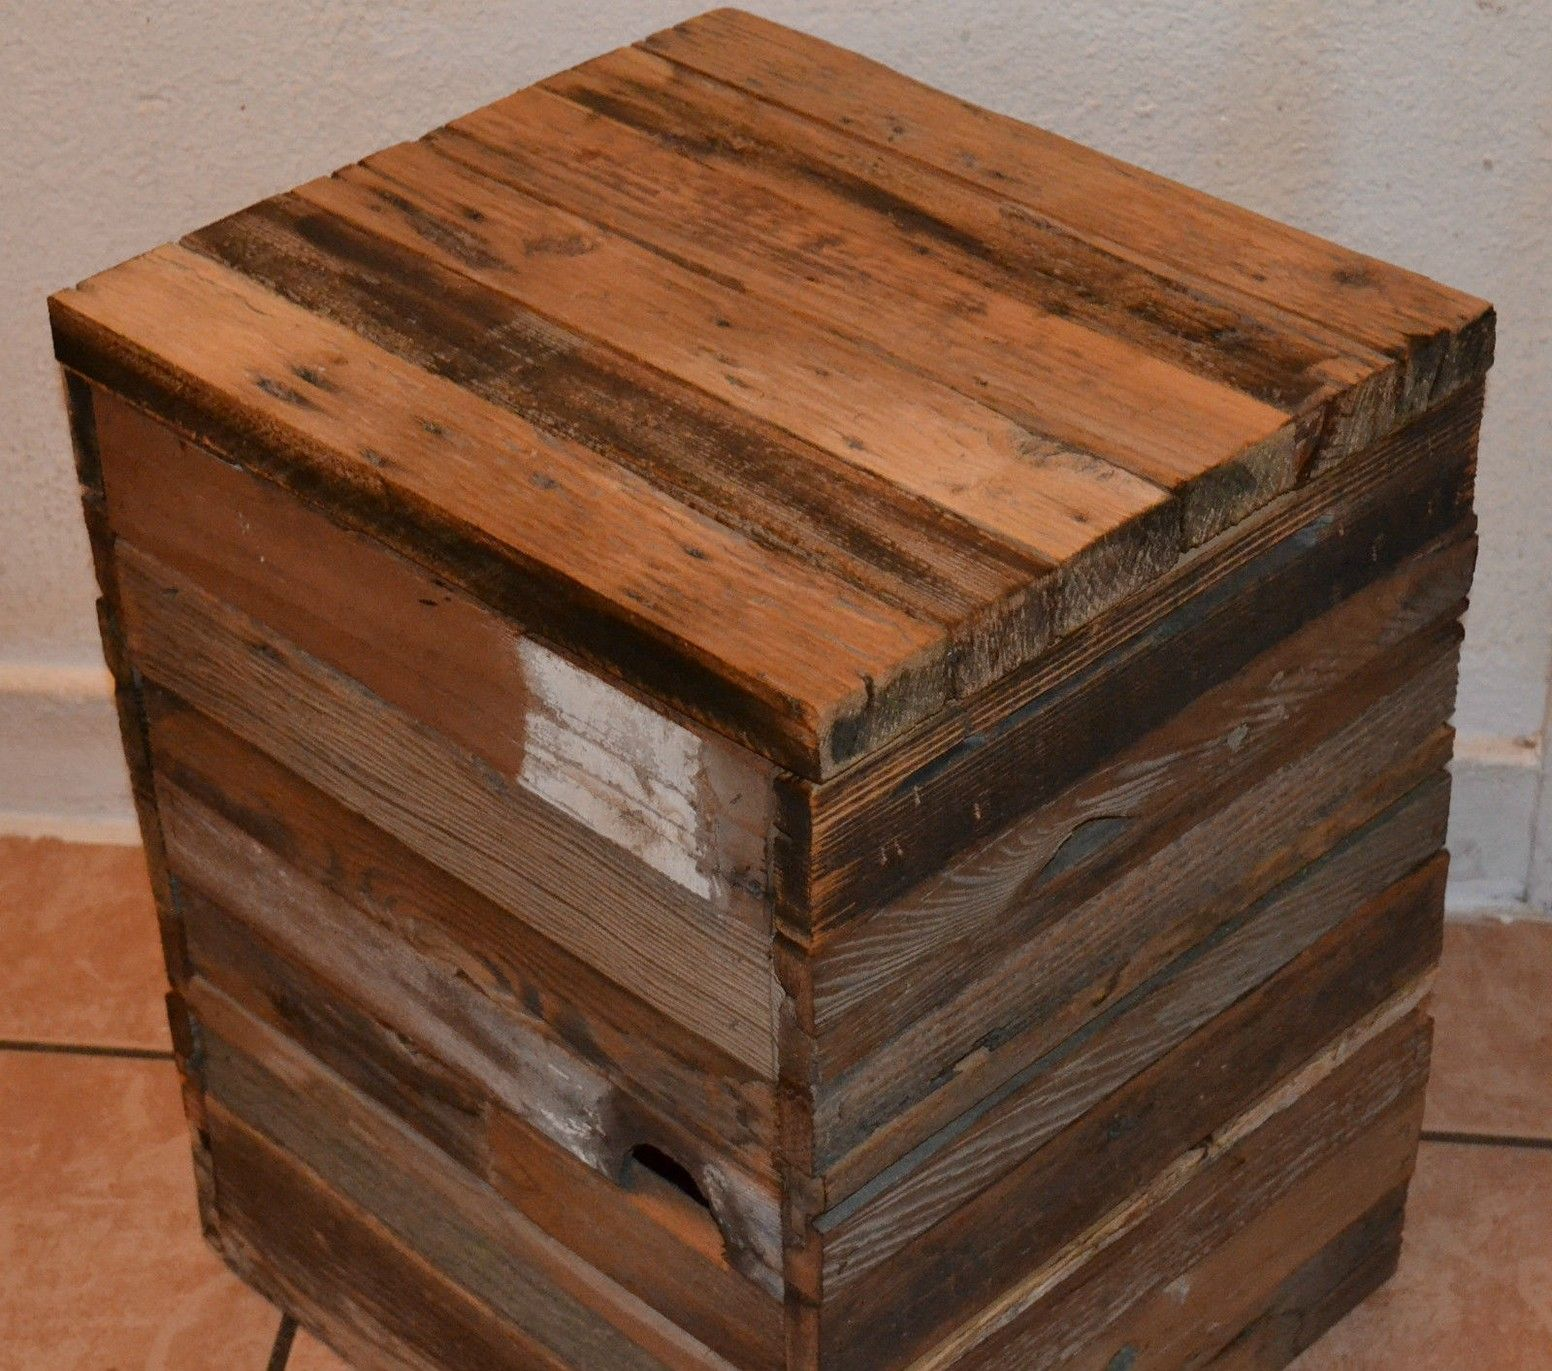 How to make a coffee table out of old wine crates easy diy The